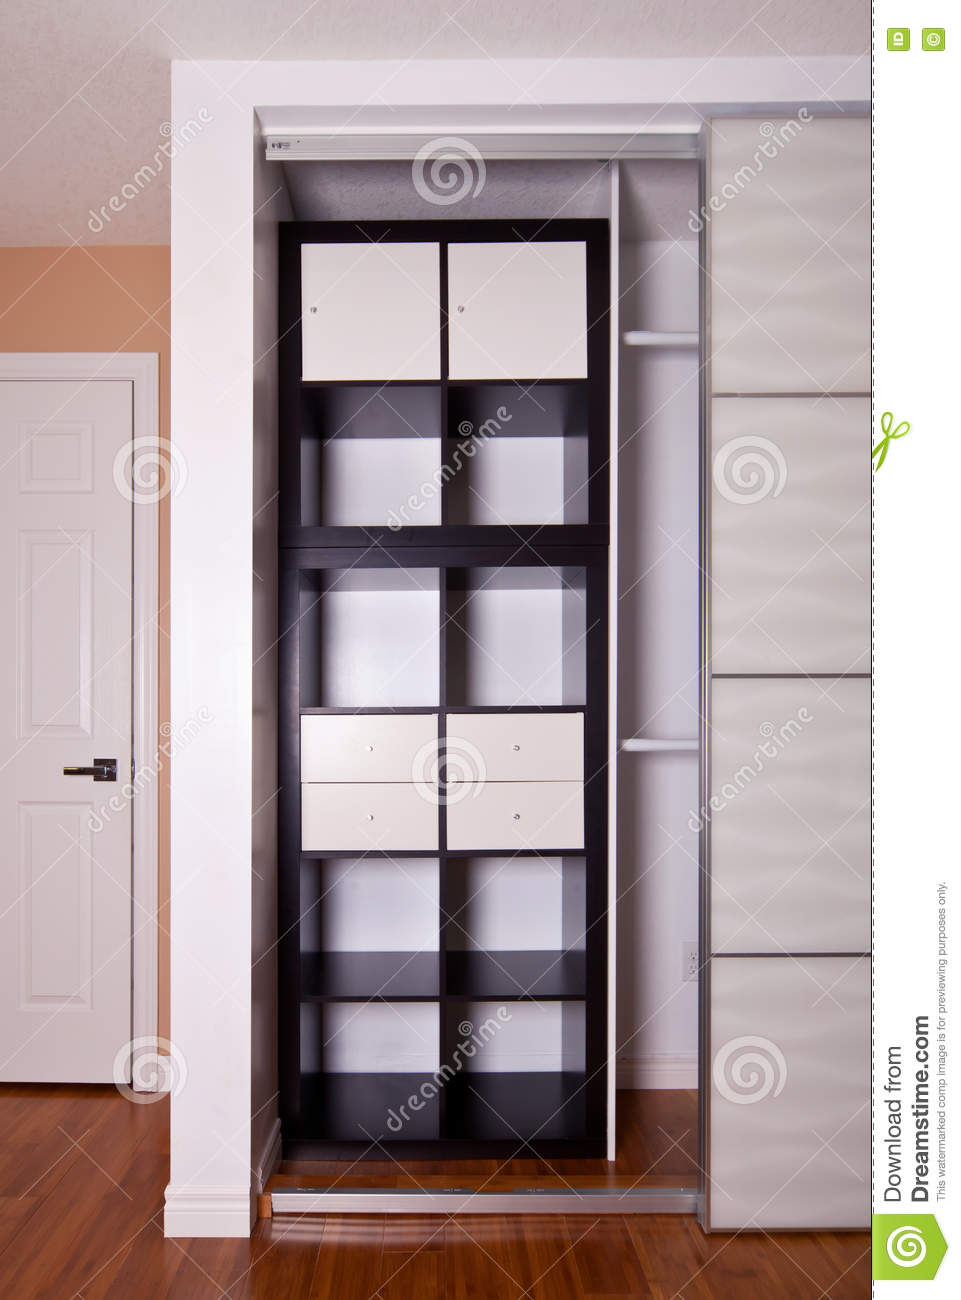 Built In Closet With Sliding Door Shelving Storage Organization Stock Photo Image Of Front Renovation 80644918